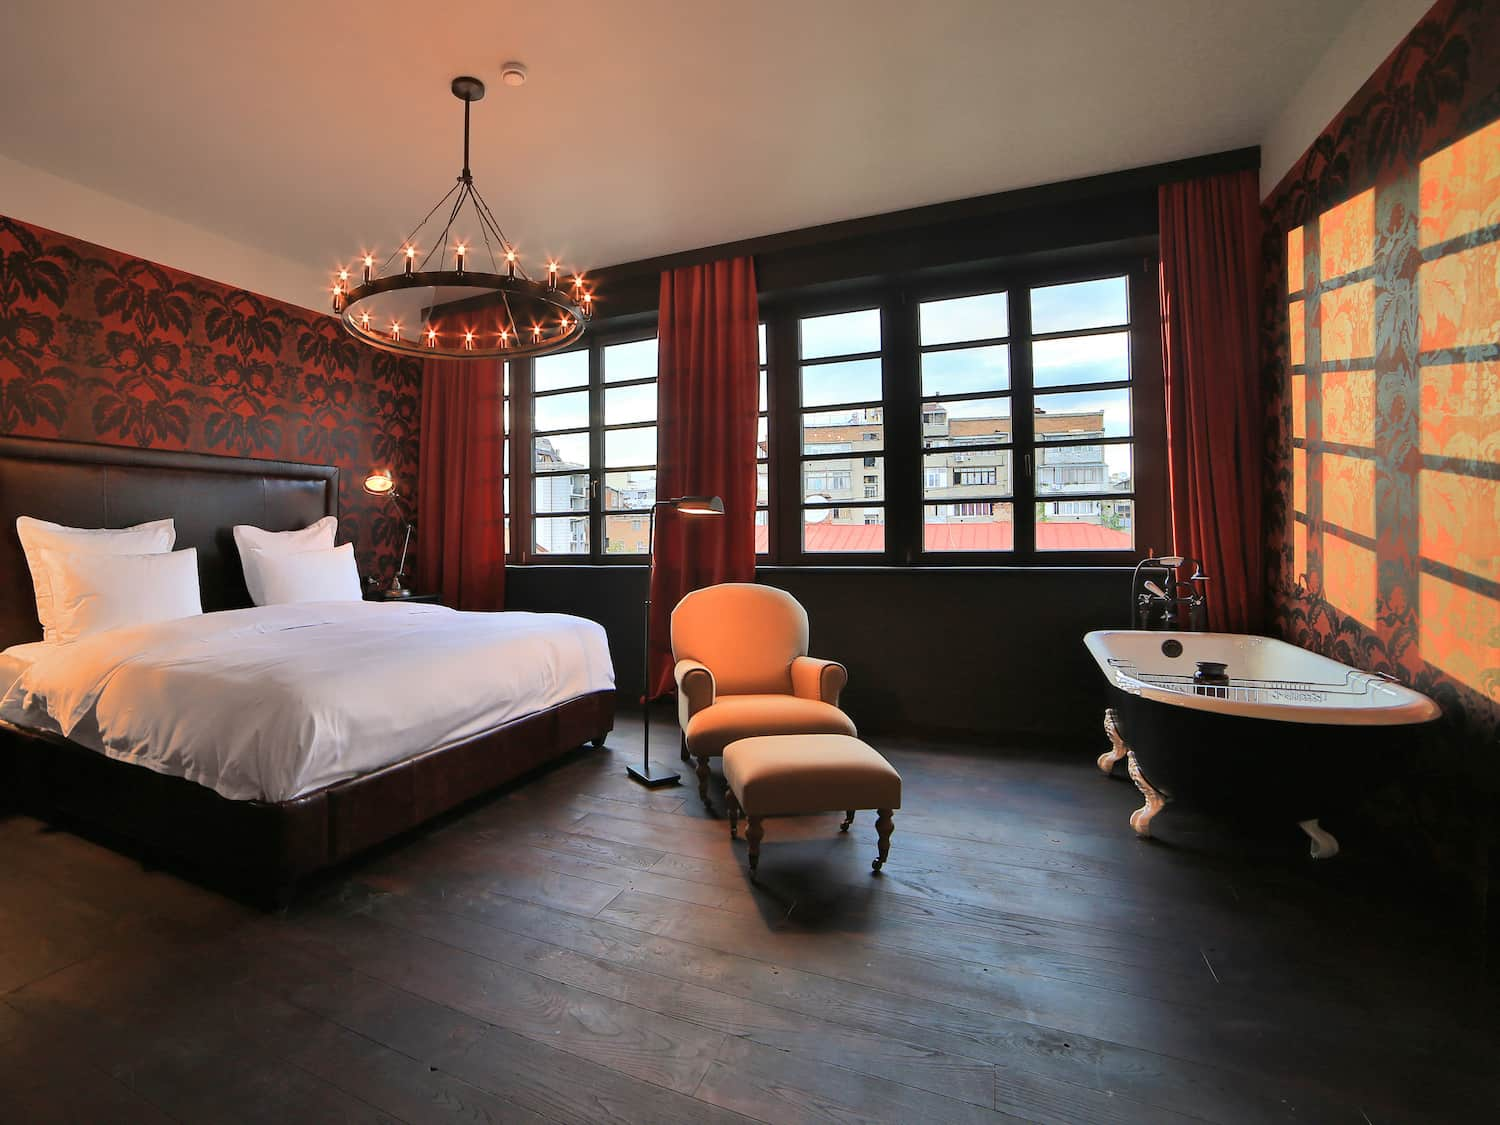 H tel rooms tbilisi the place to be for Design hotel tbilisi